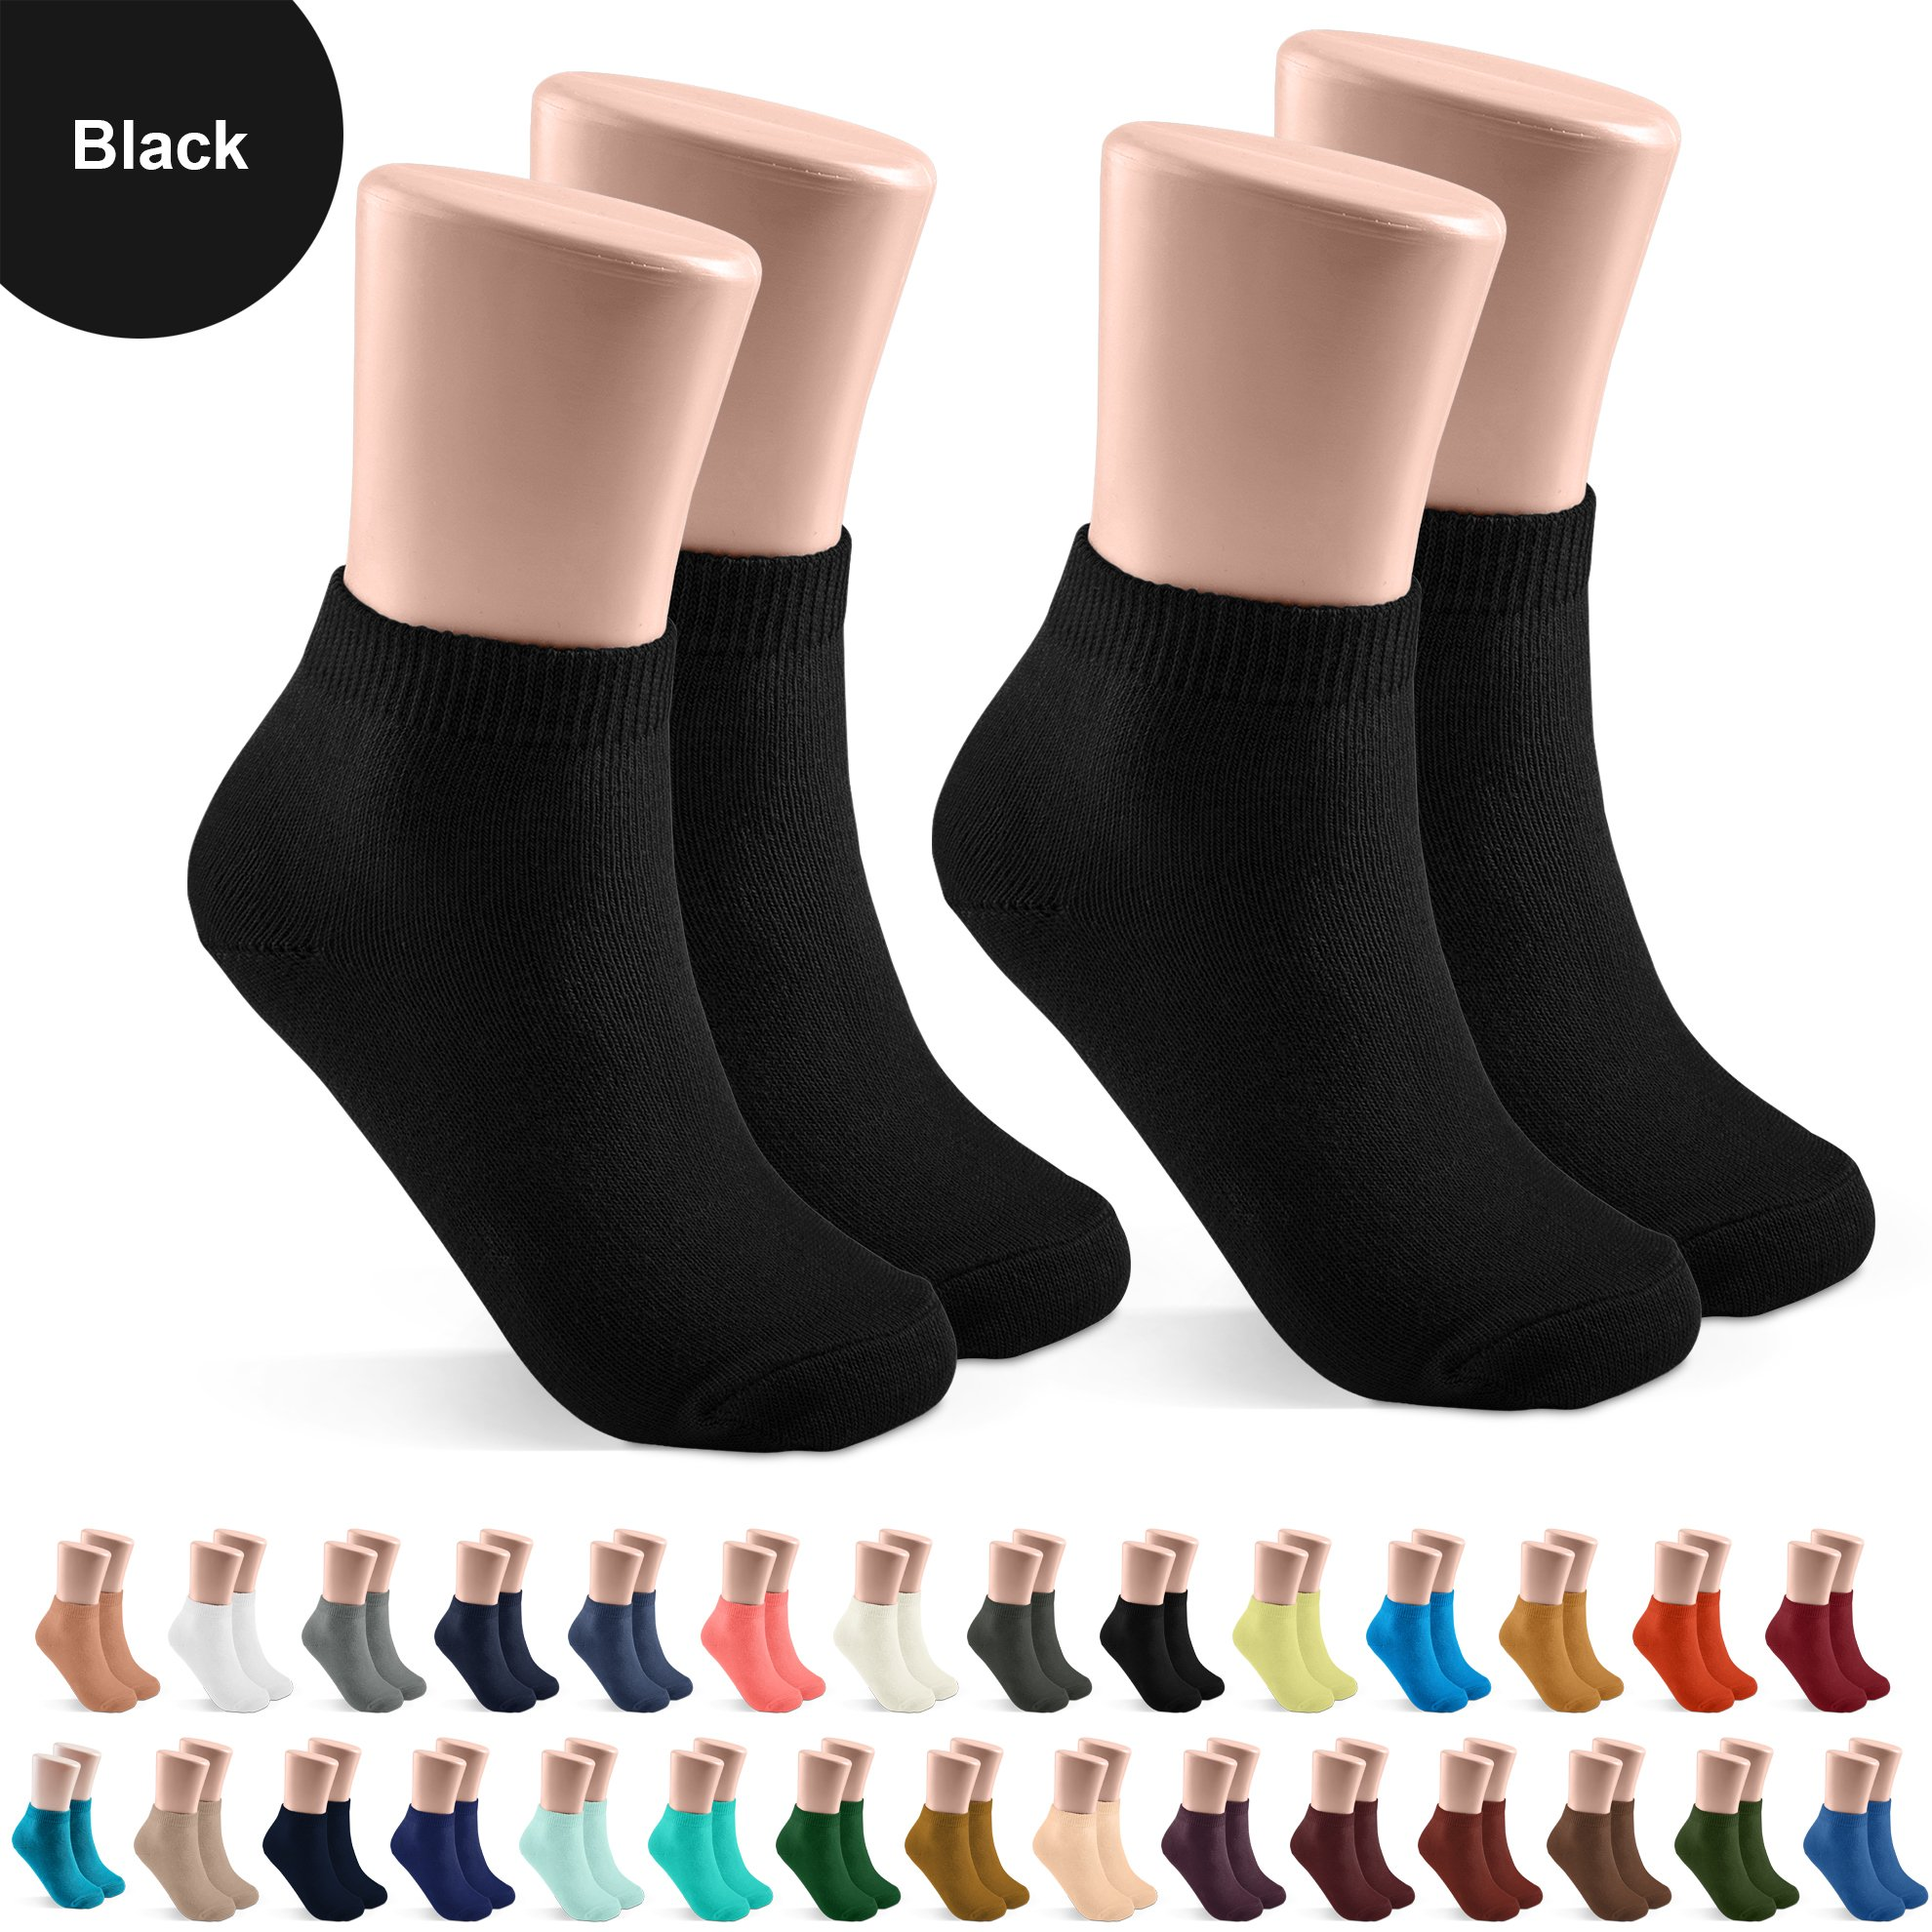 JRP 2 Pack Soft Cotton Crew Socks for Babies, Toddlers, Boys and Girls - Black - Size 7-8